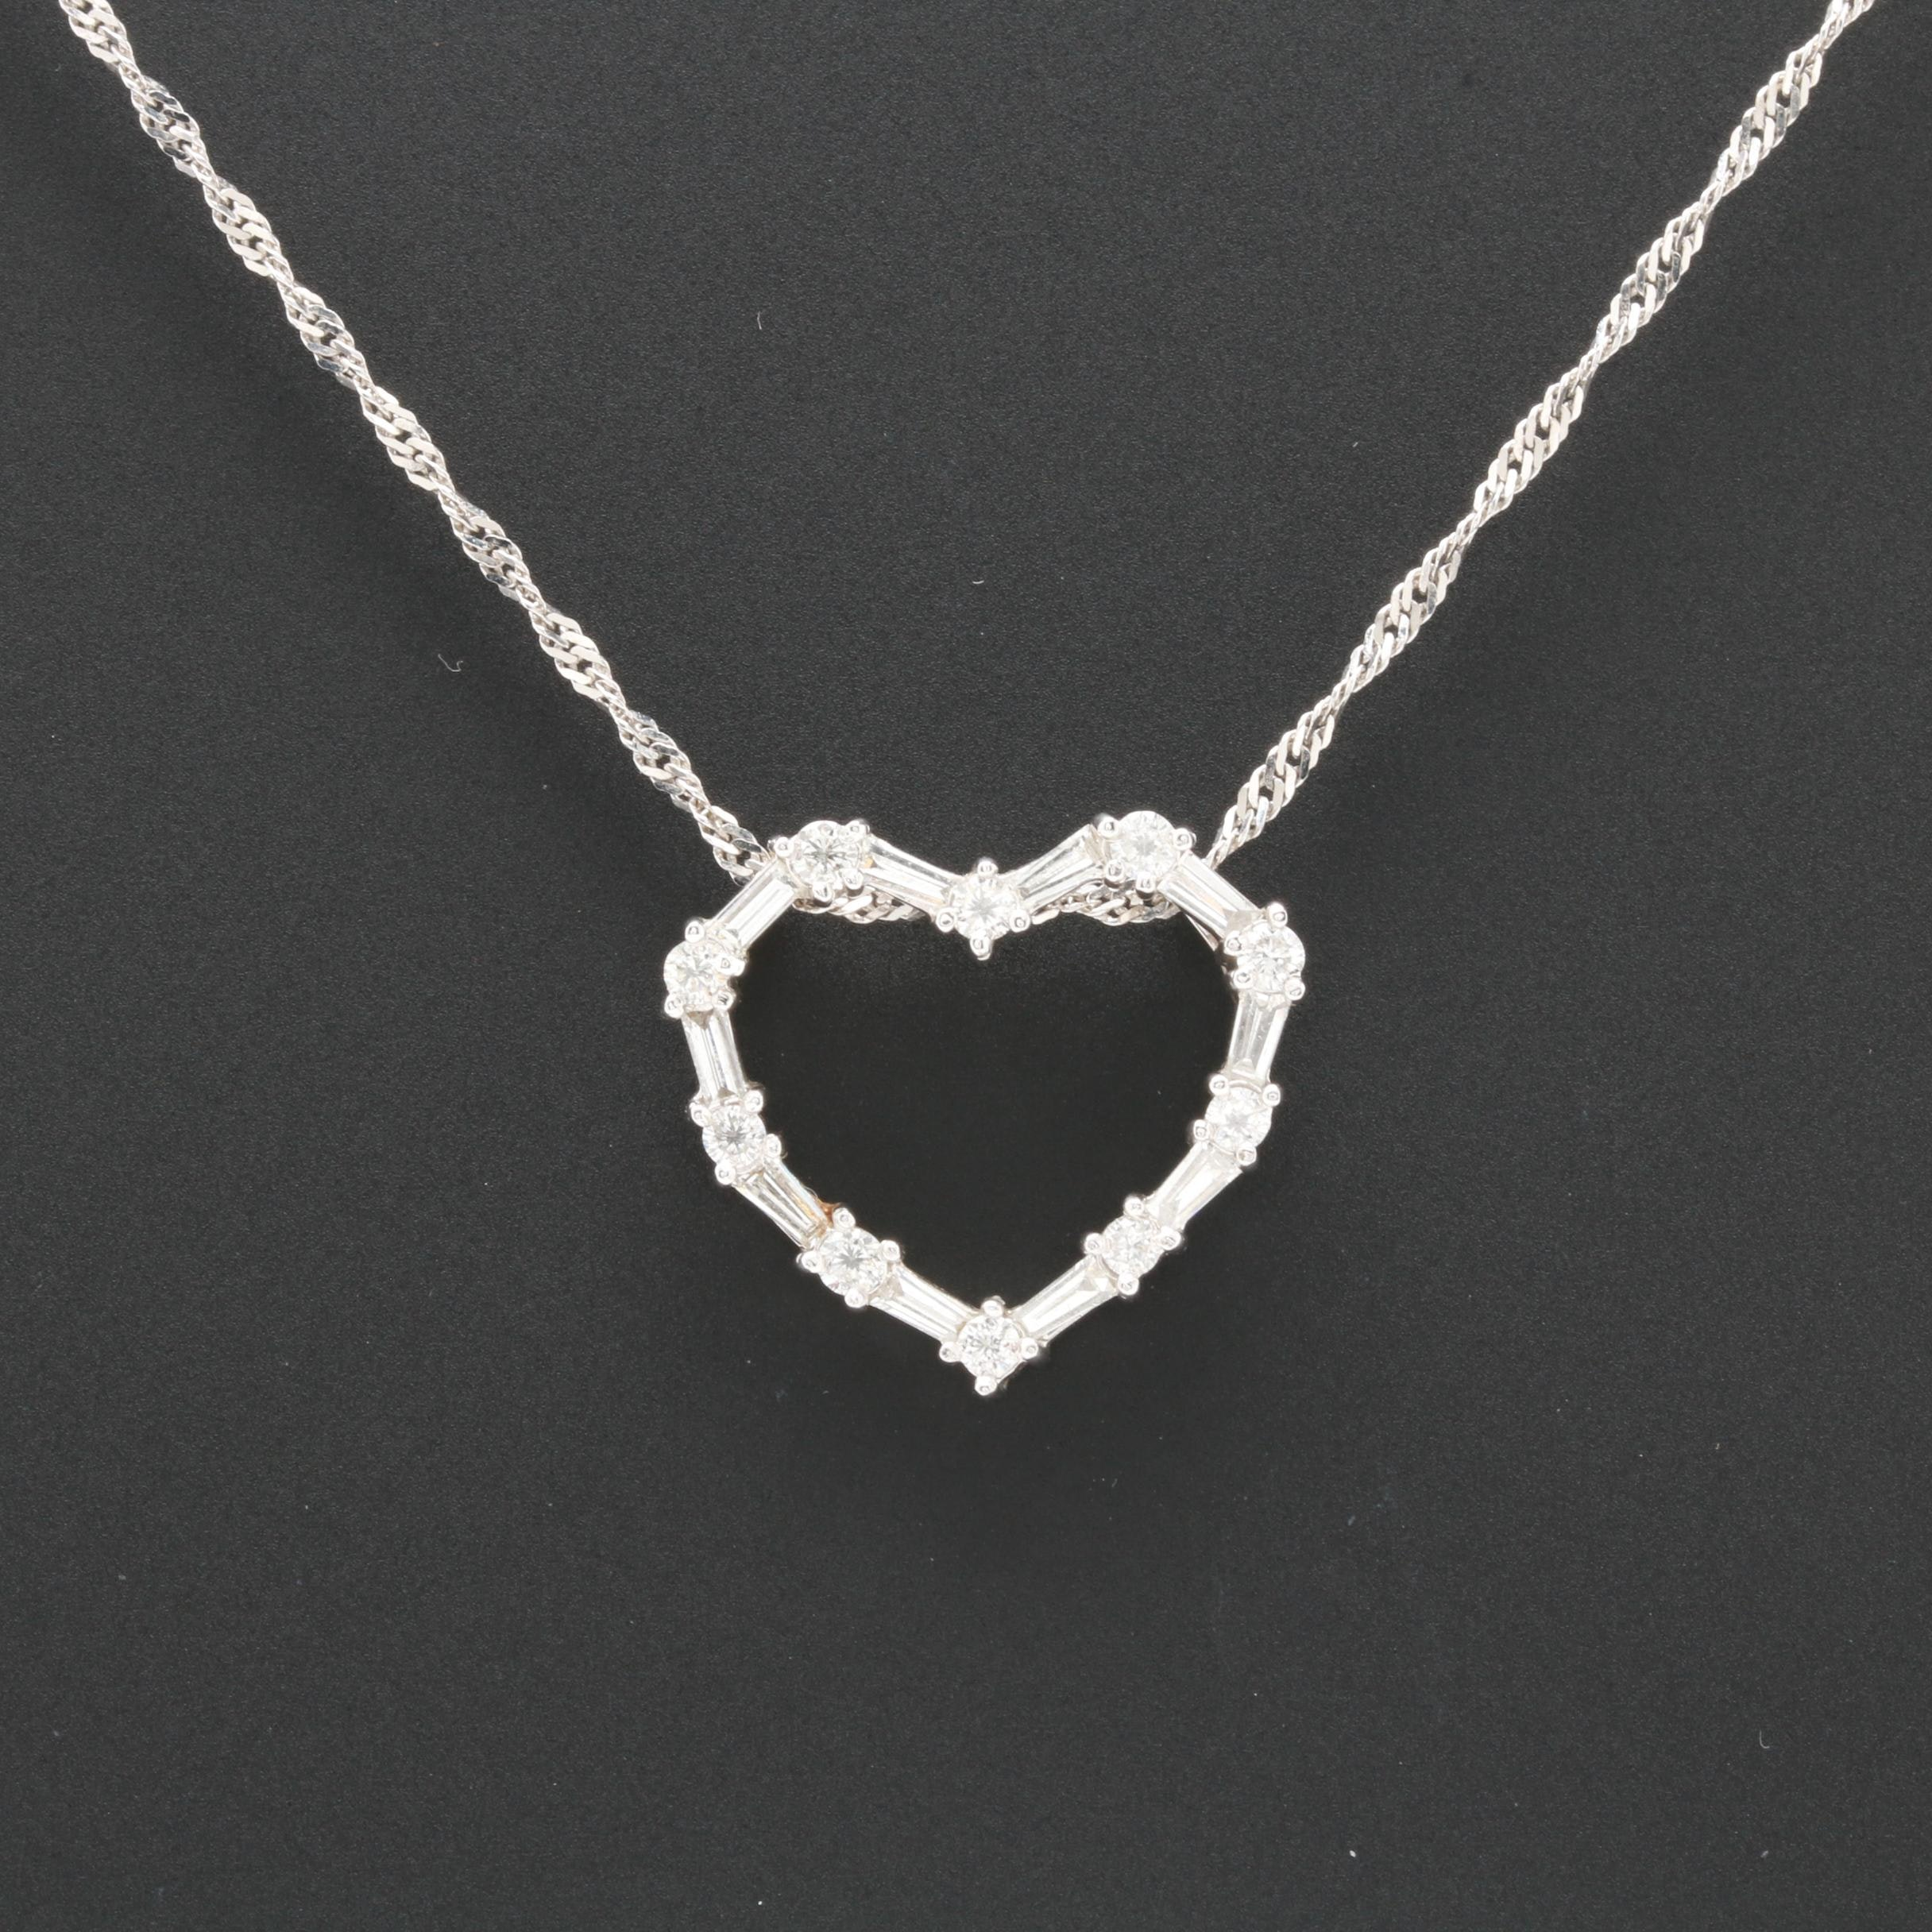 14K and 18K White Gold Diamond Heart Pendant Necklace